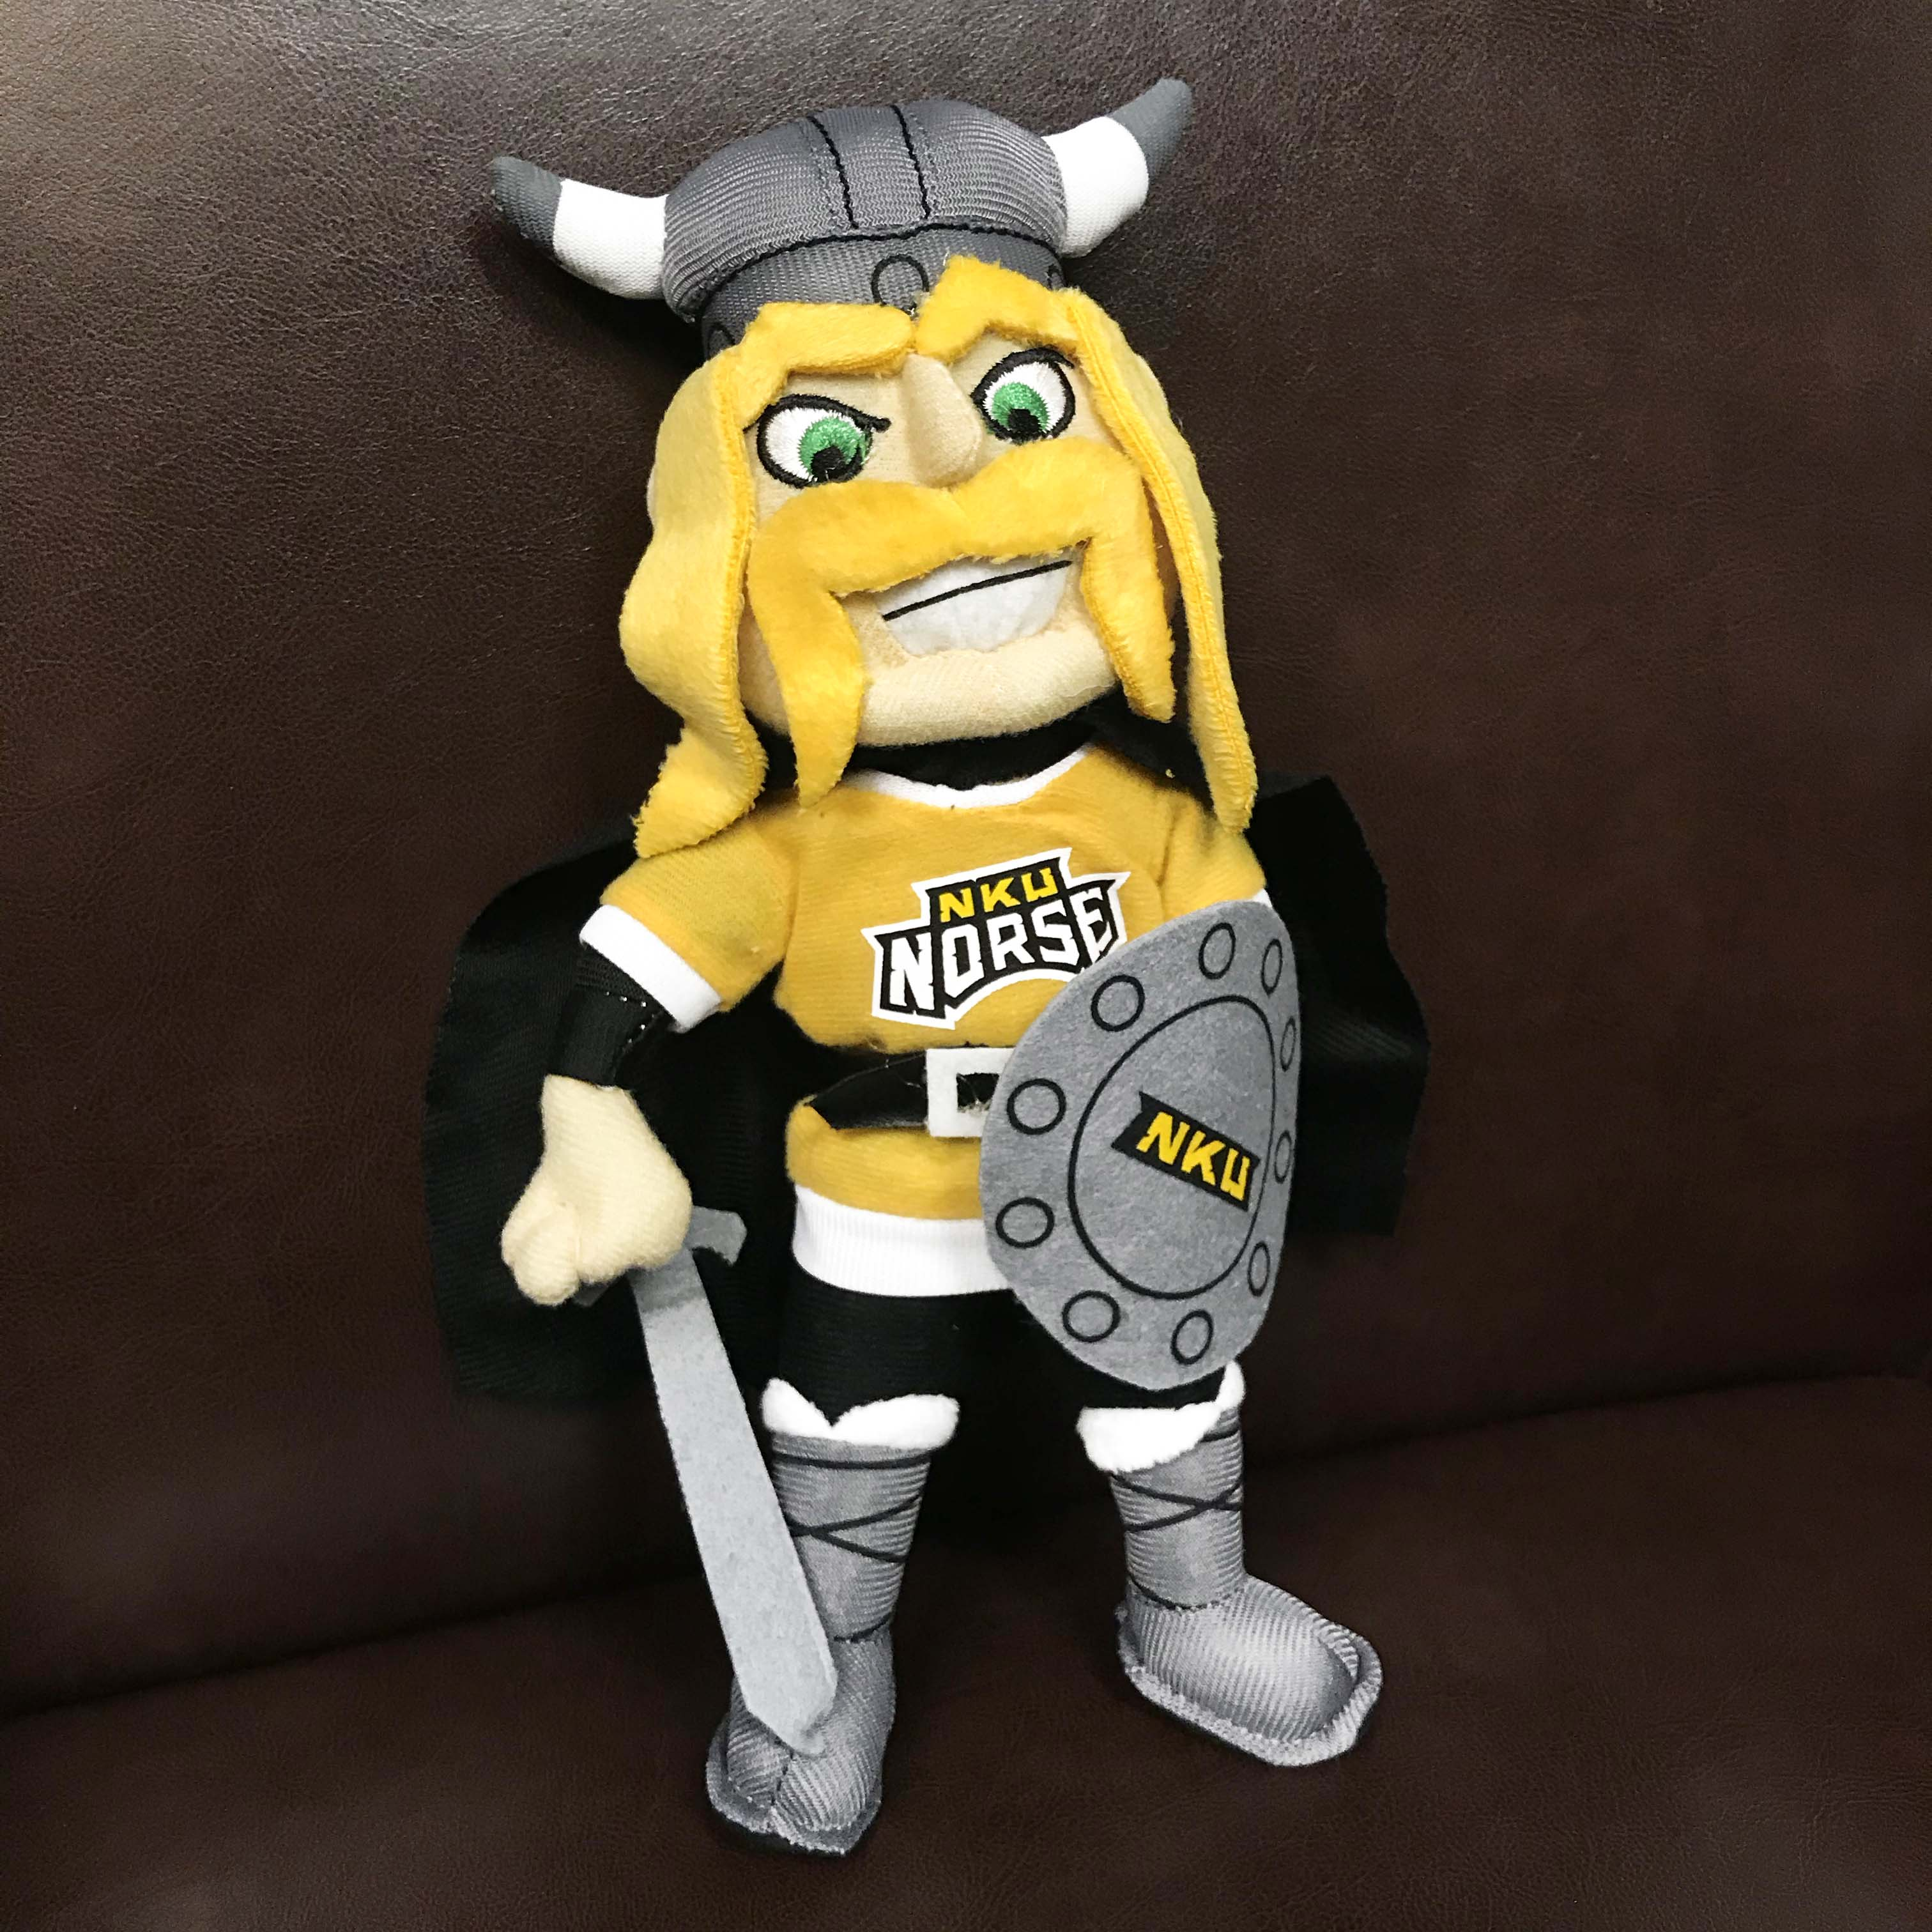 An NKU Victor E Viking plush.